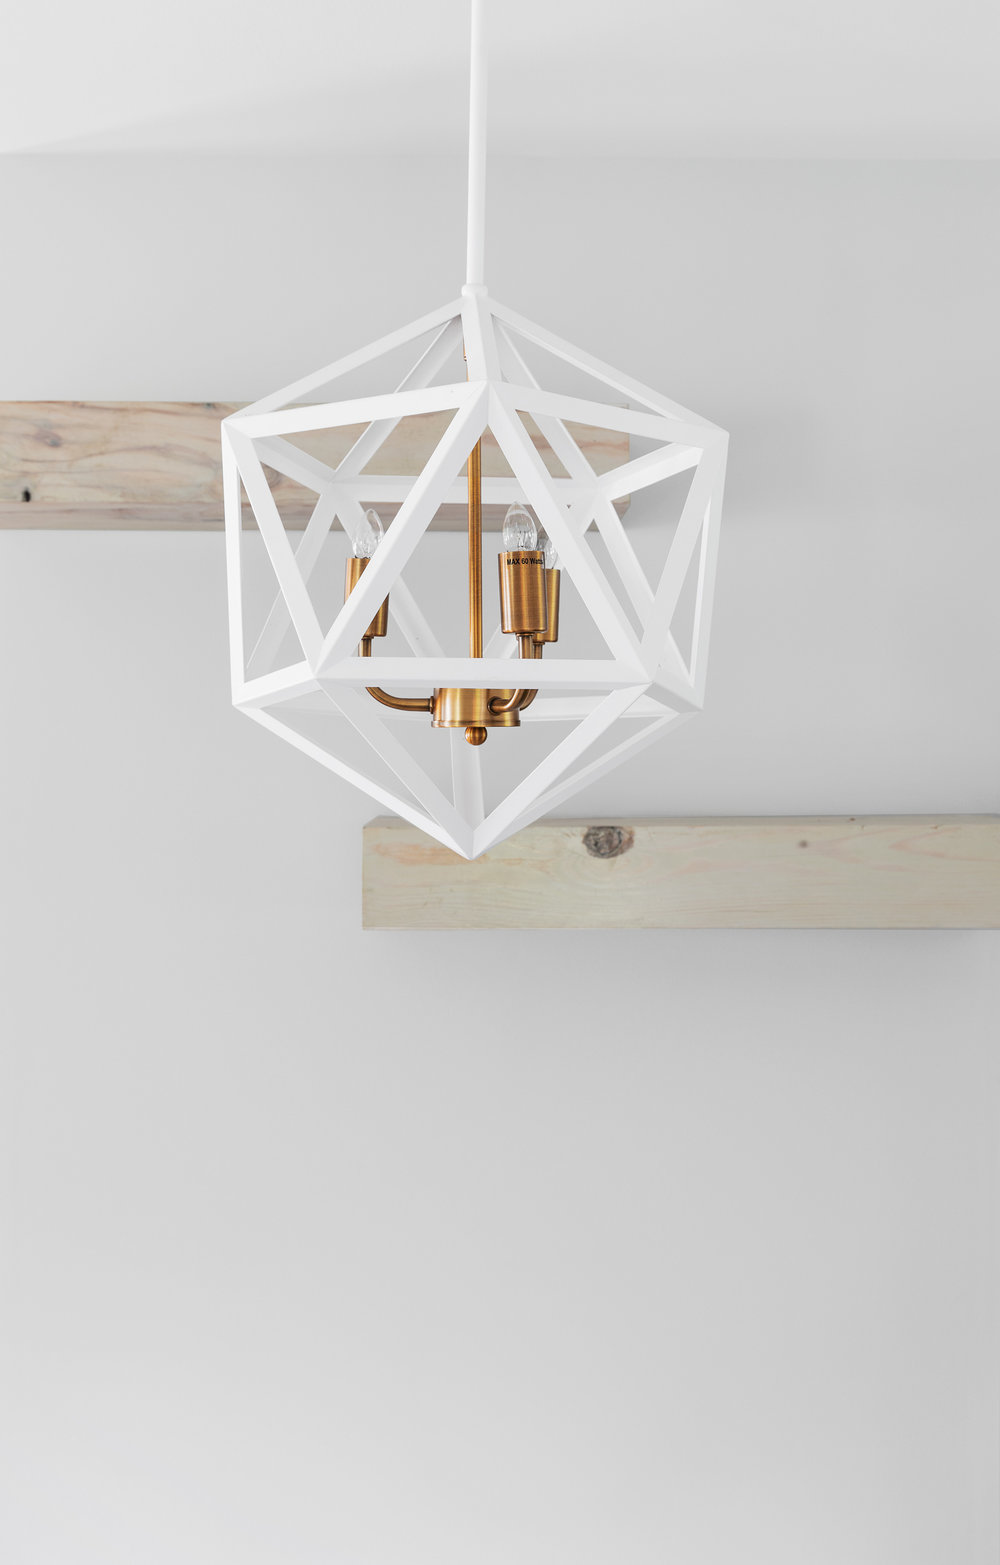 Construction photography of a custom light fixture in a newly fi